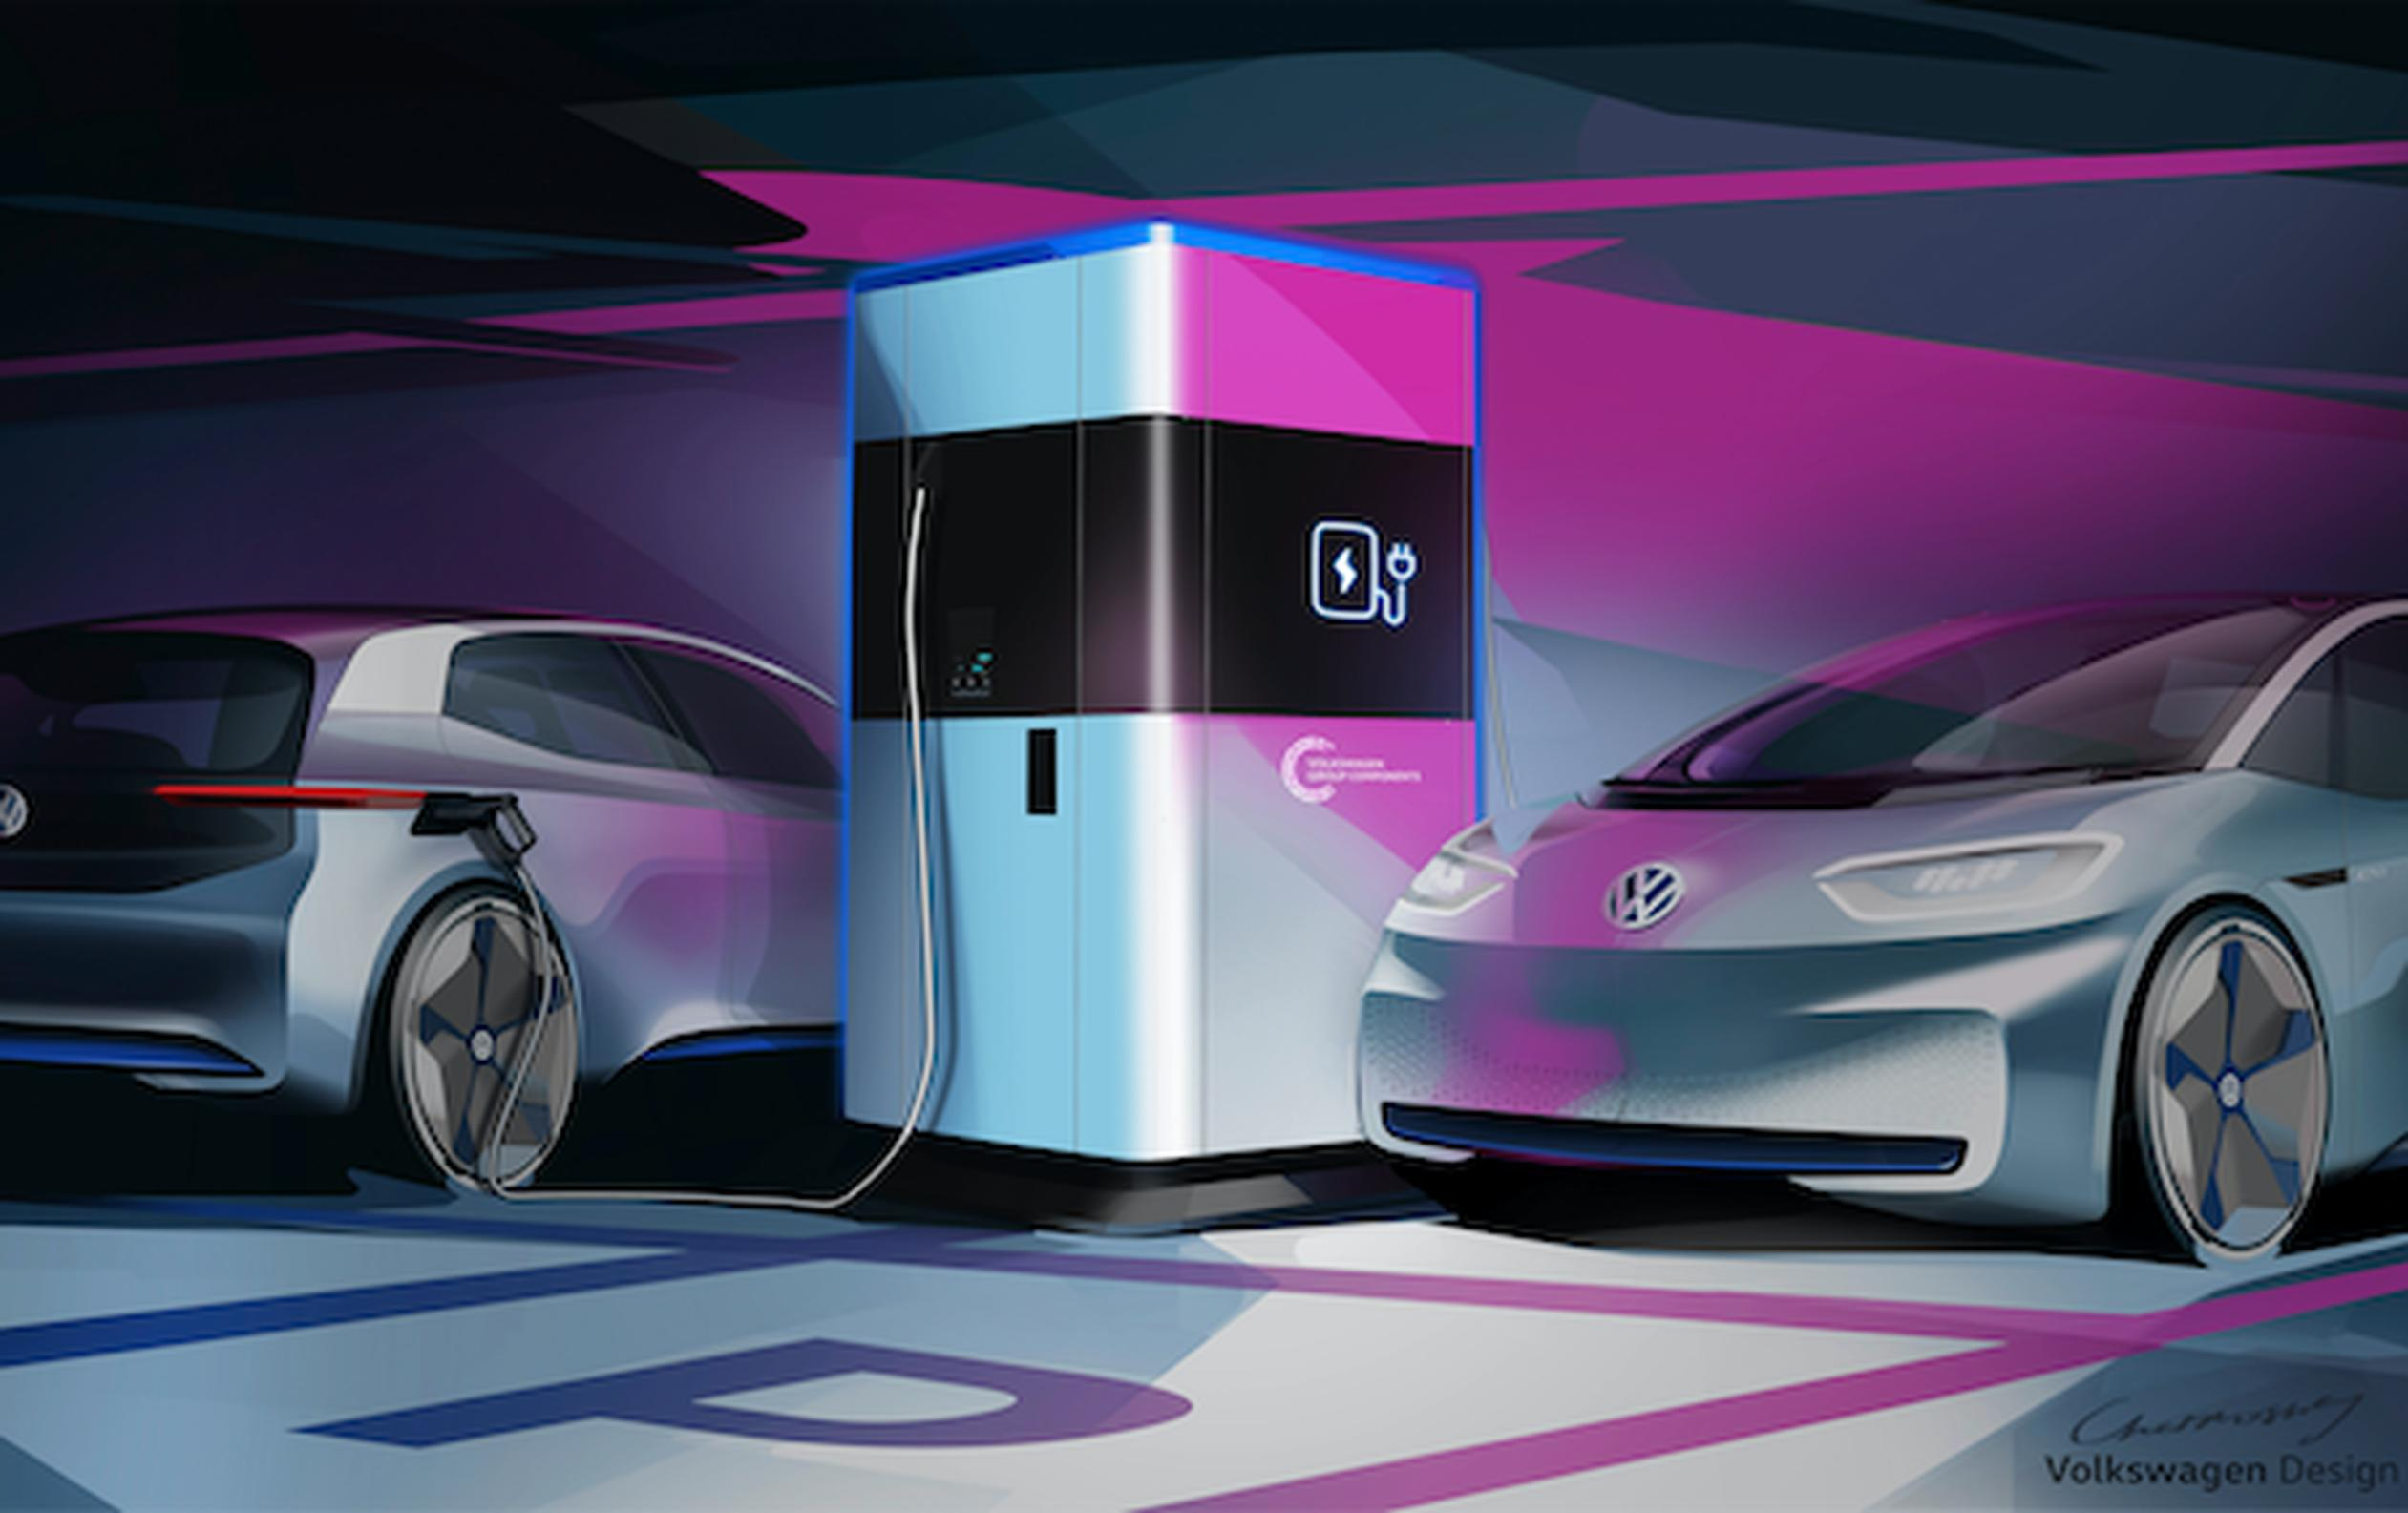 VW`s proposed mobile electric vehicle charger